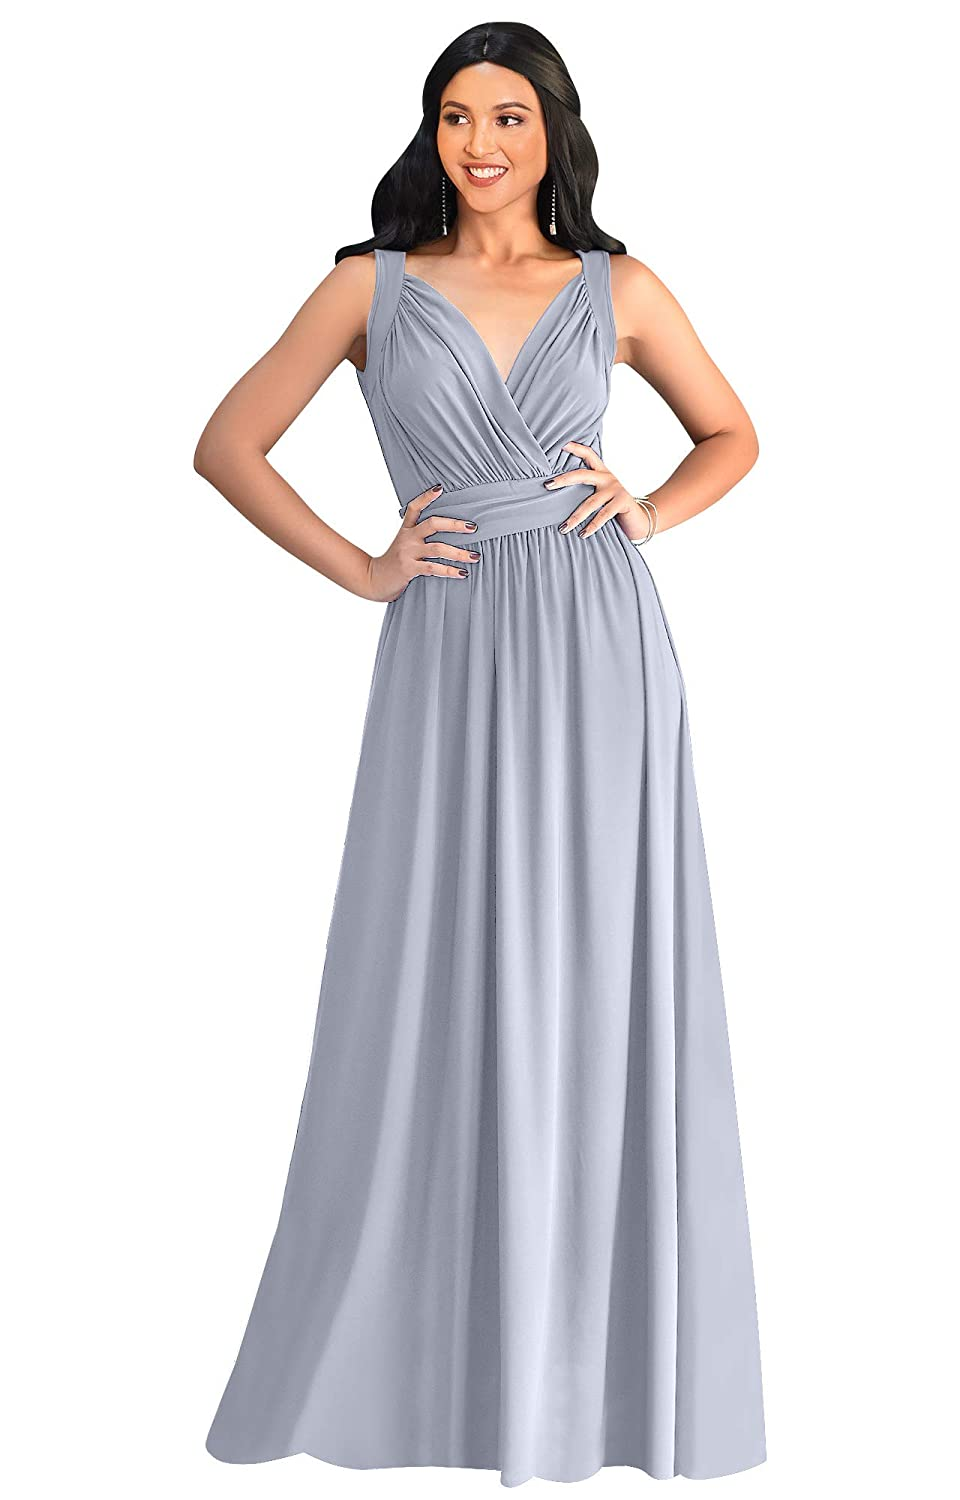 1940s Dress Styles KOH KOH Womens Long Sleeveless Flowy Bridesmaid Cocktail Evening Gown Maxi Dress $59.95 AT vintagedancer.com